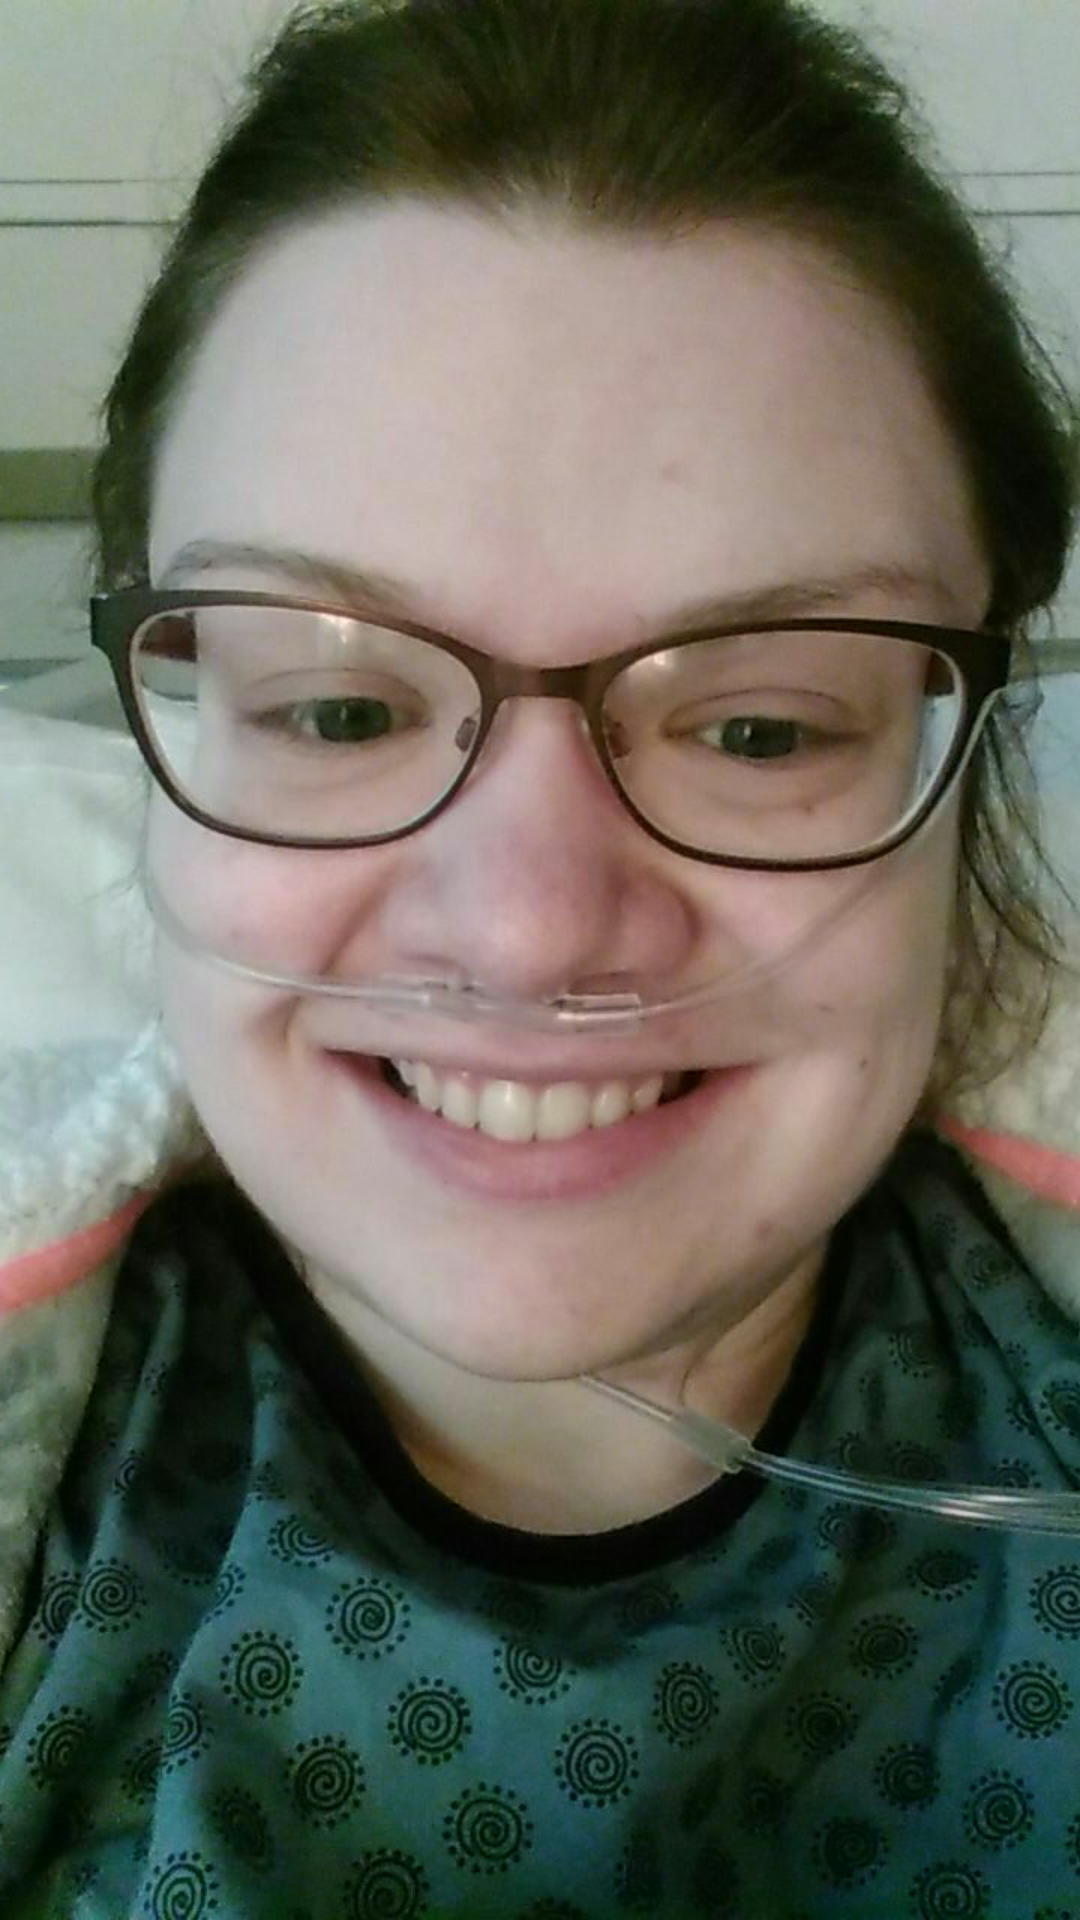 woman in the hospital wearing glasses and an oxygen tube in her nose